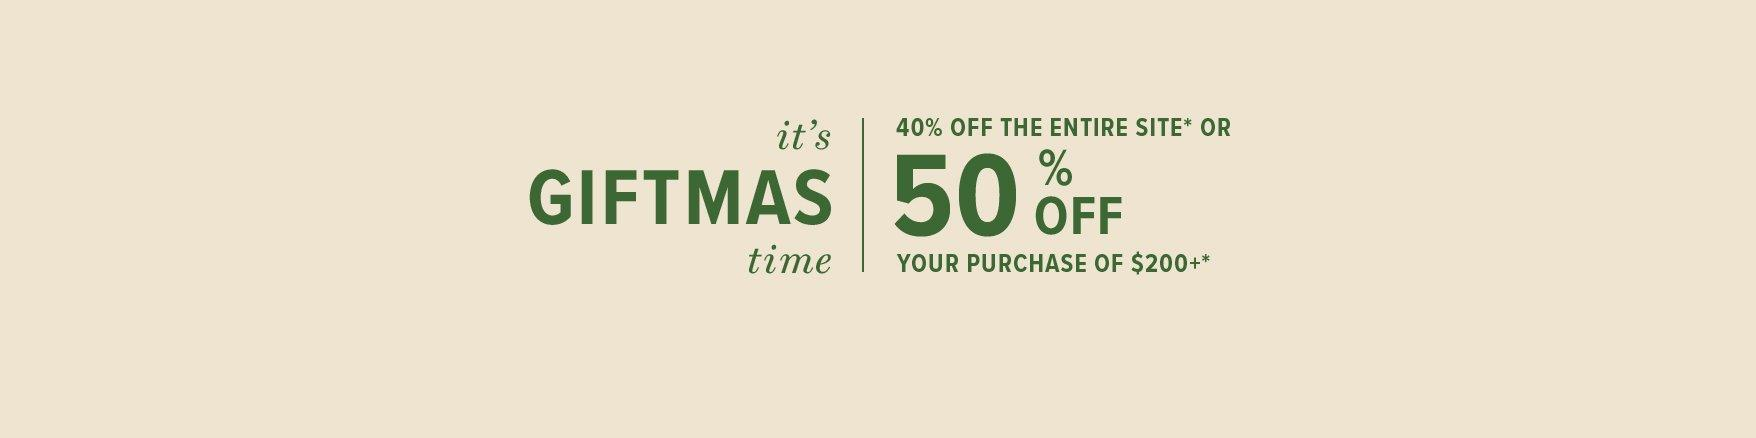 it's giftmas time - 40% off the entire site or 50% off your purchase of $400+